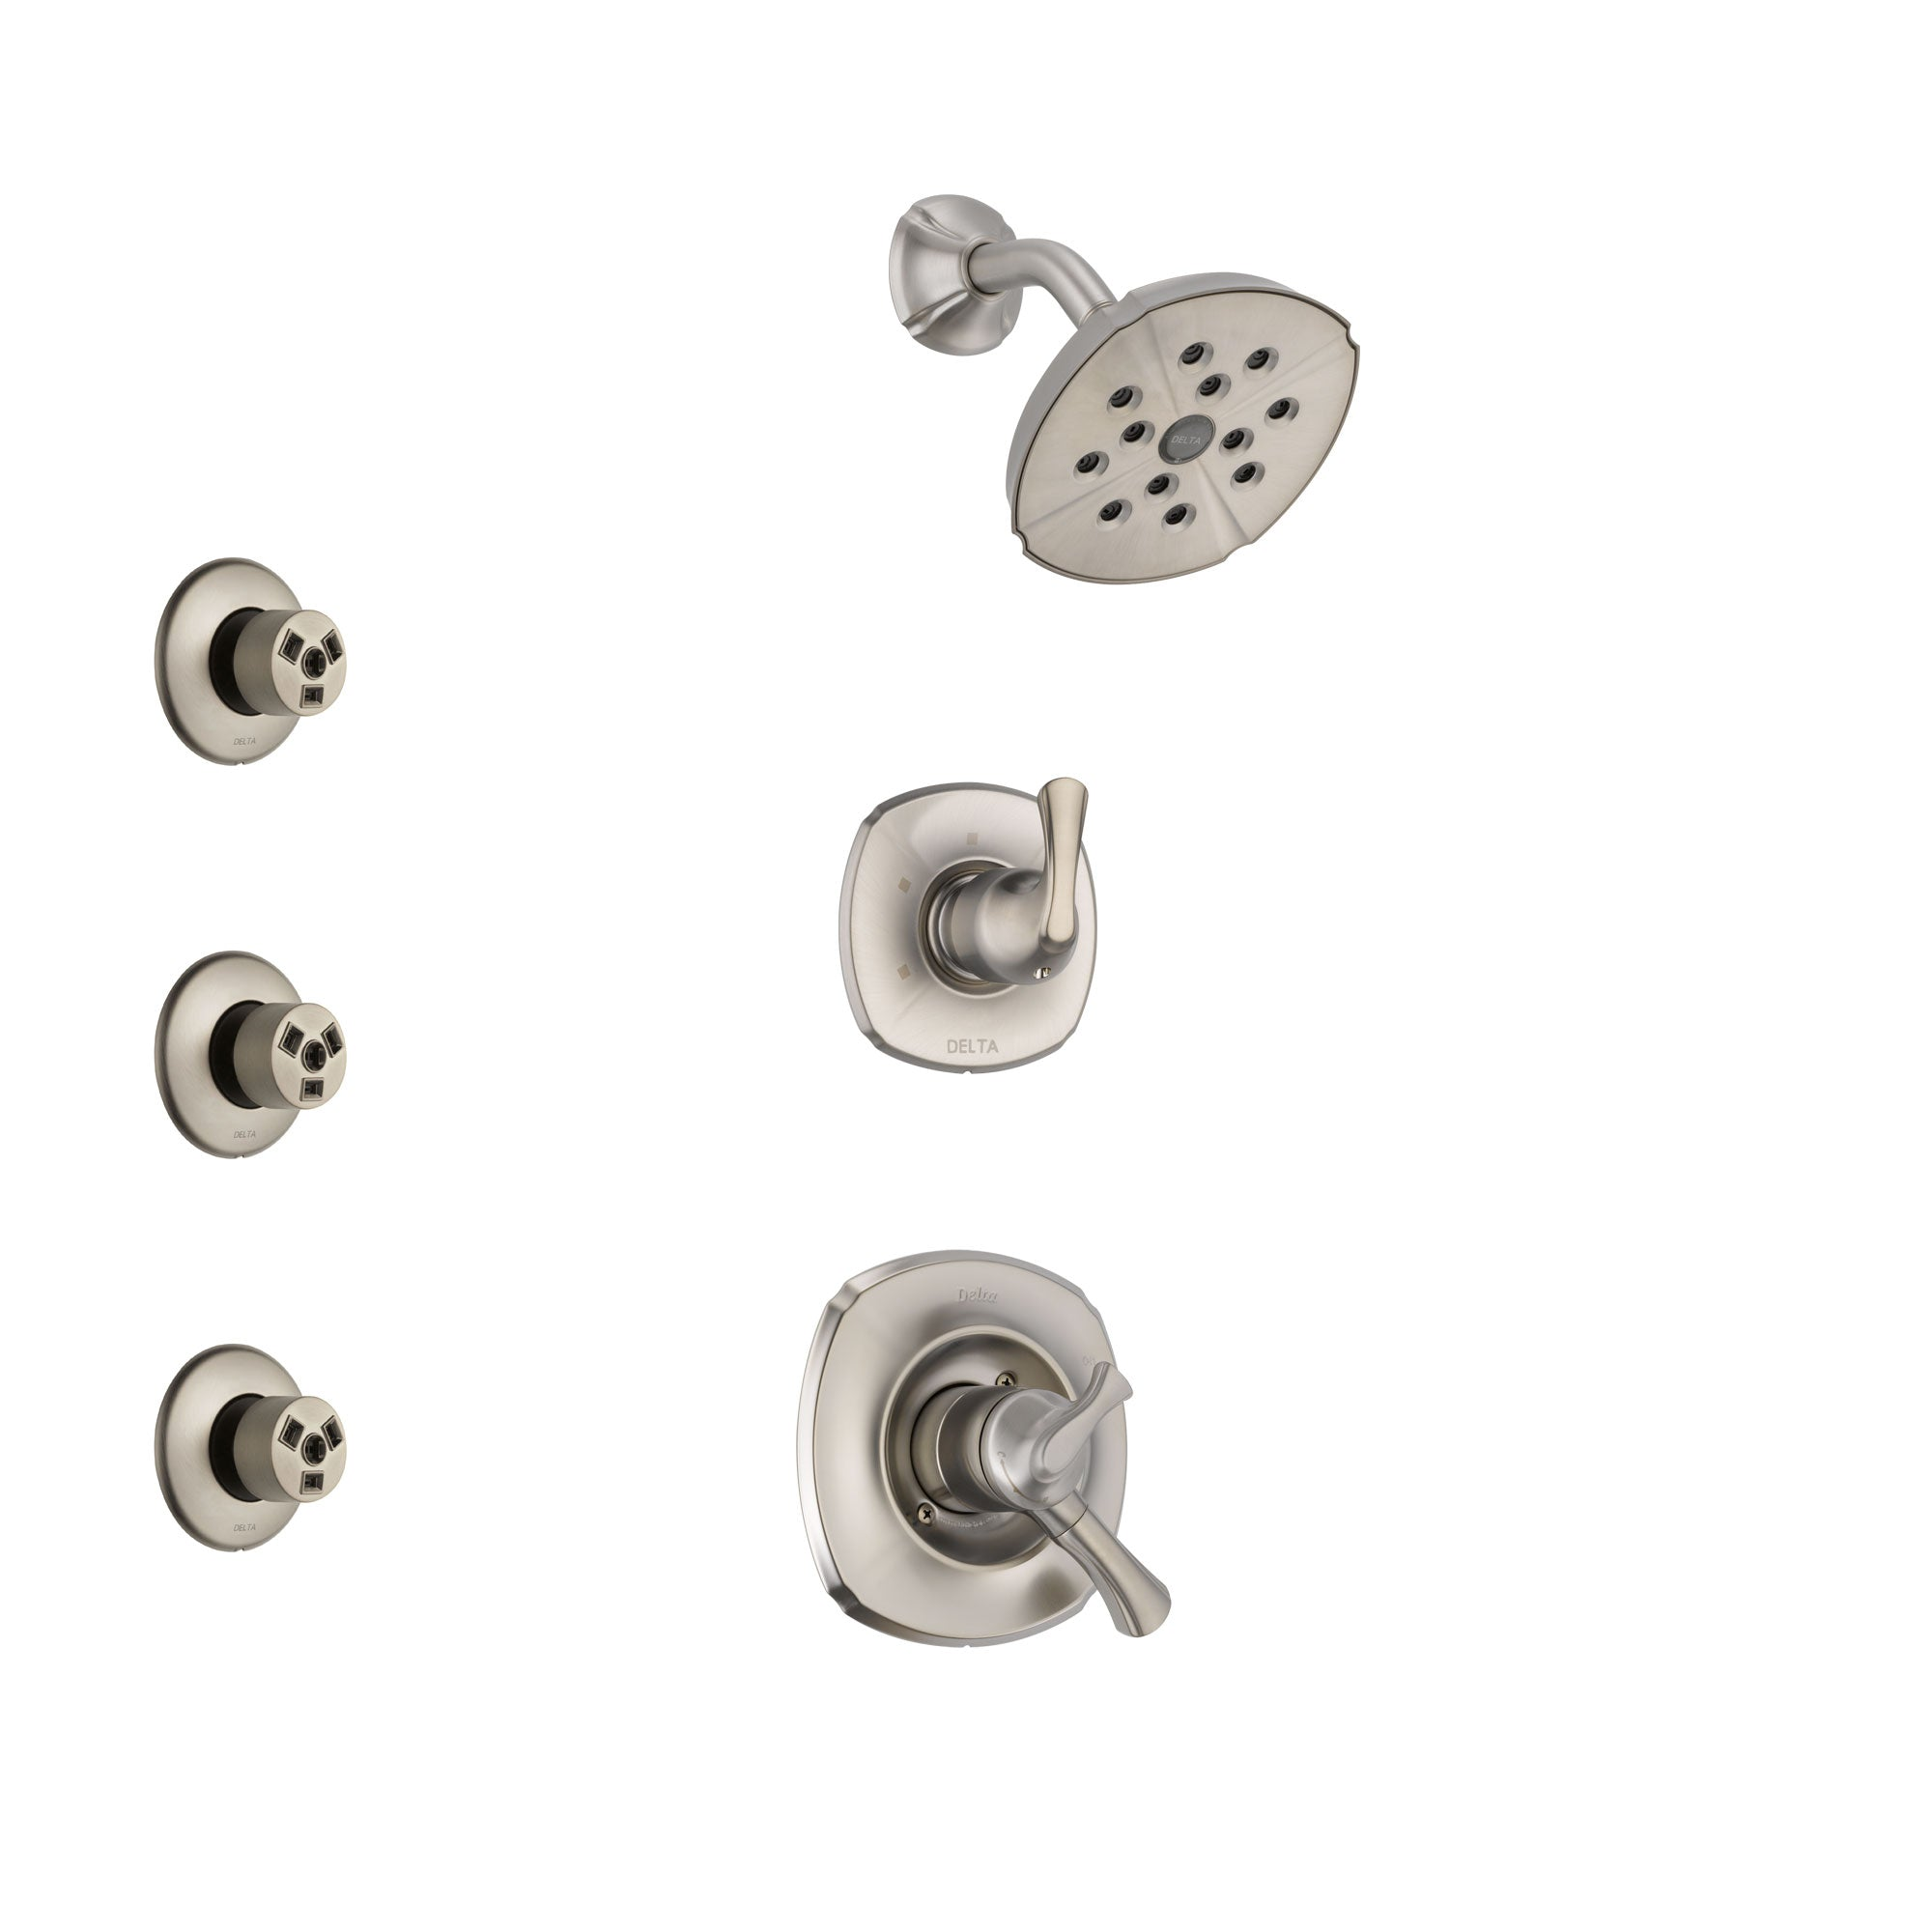 Delta Addison Stainless Steel Finish Shower System with Dual Control Handle, 3-Setting Diverter, Showerhead, and 3 Body Sprays SS17292SS2